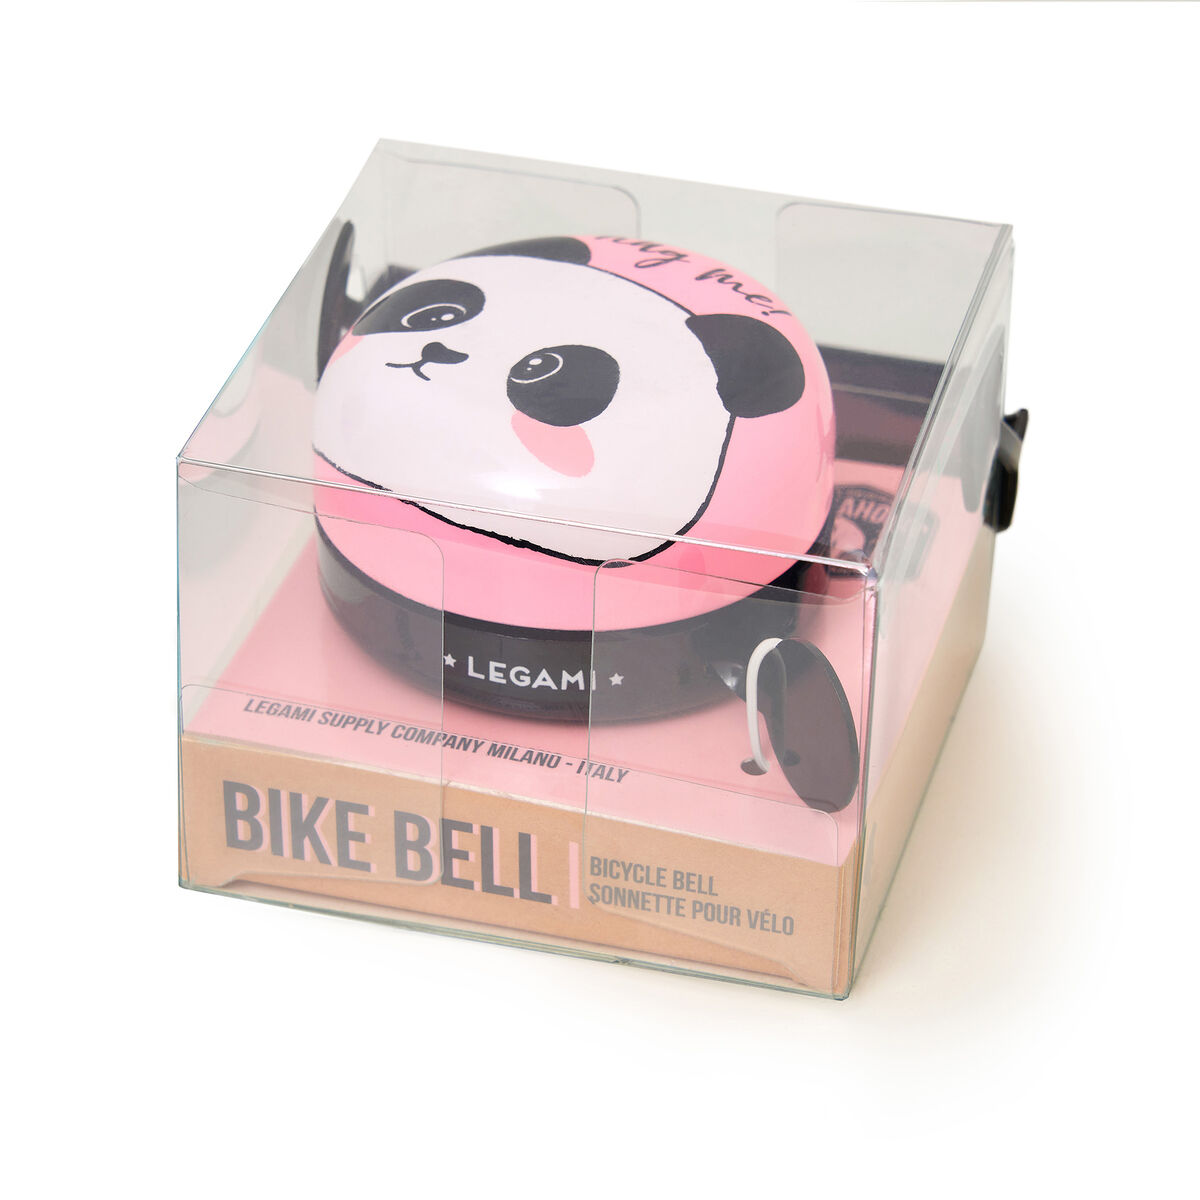 My Bike Bell - Bicycle Bell, , zoom